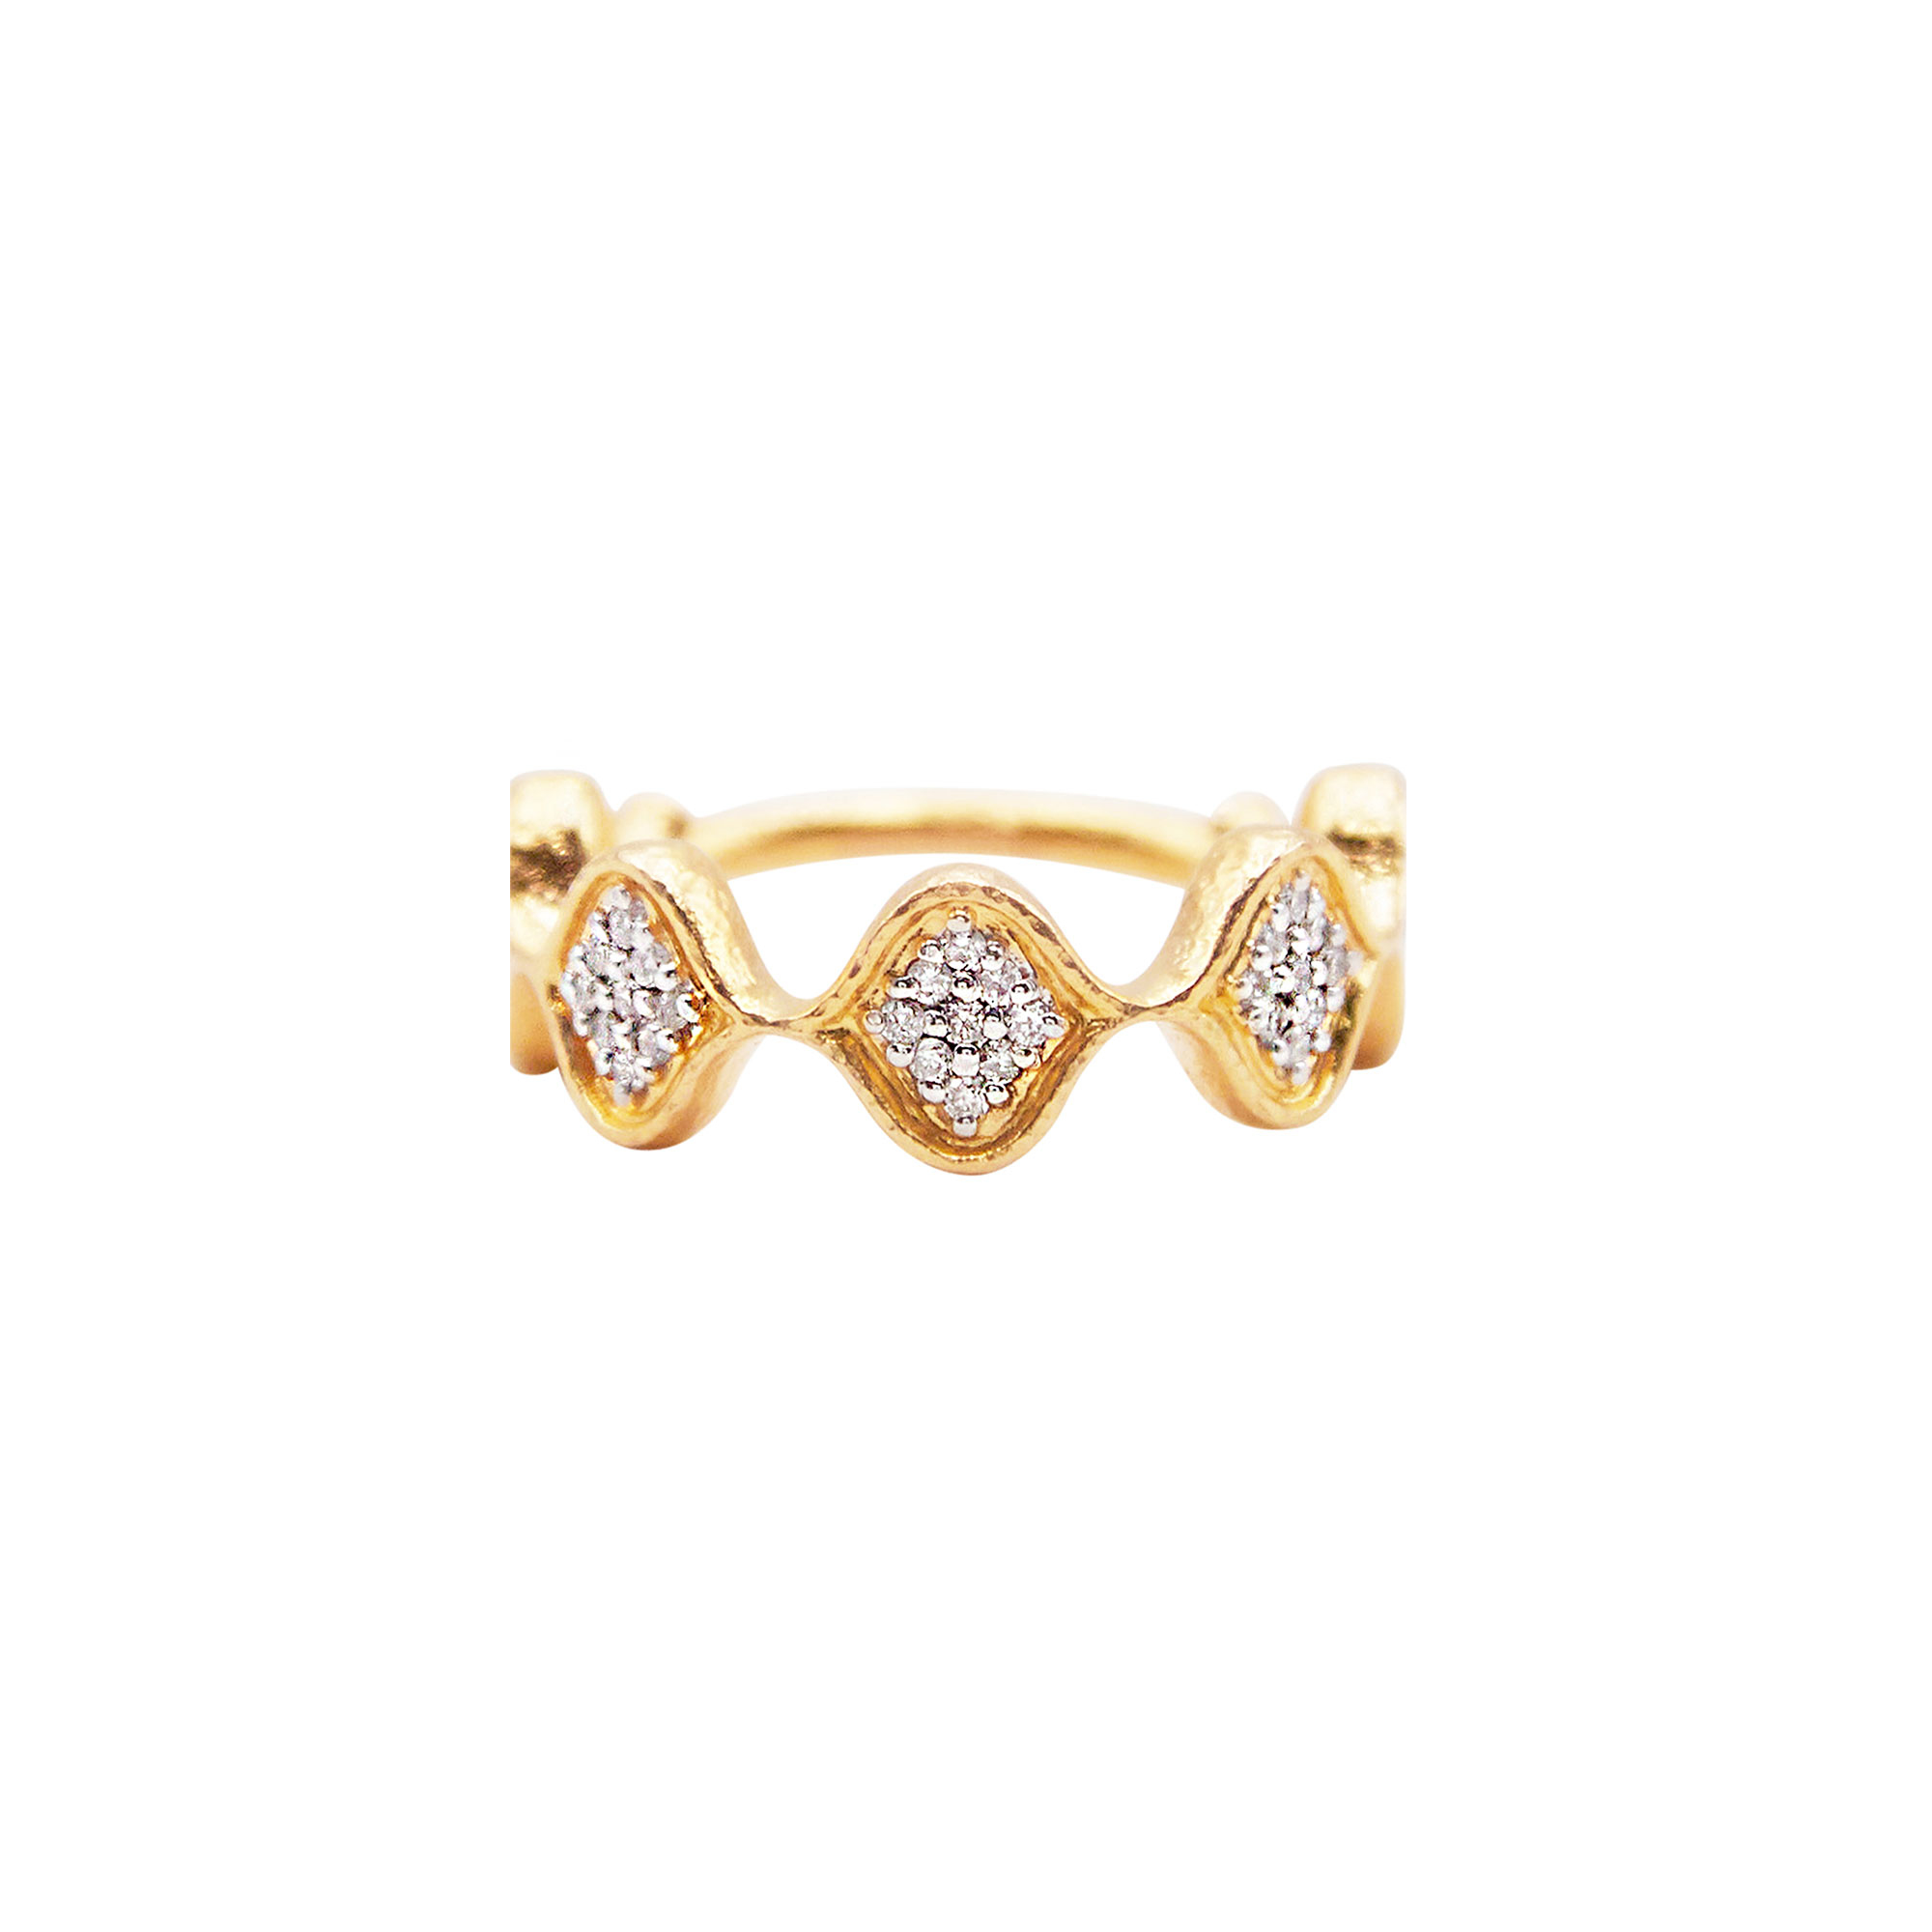 Gurhan 18-22K Yellow Gold .36cts White Diamond Gold Ring with Stones GUR-YG-DI-8666-65